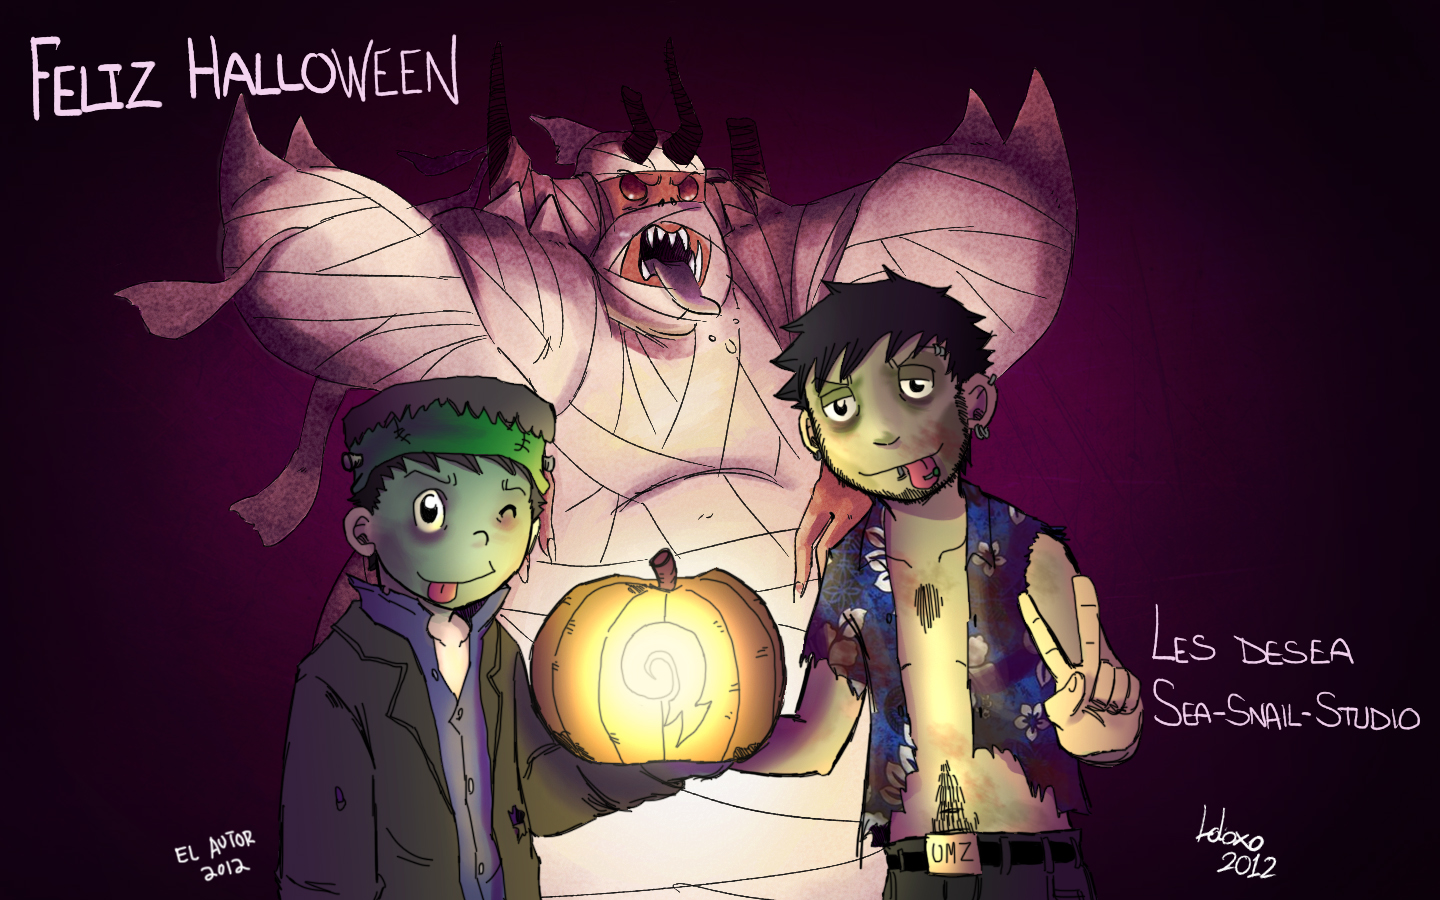 Feliz Halloween! by Sea-Snail-Studio